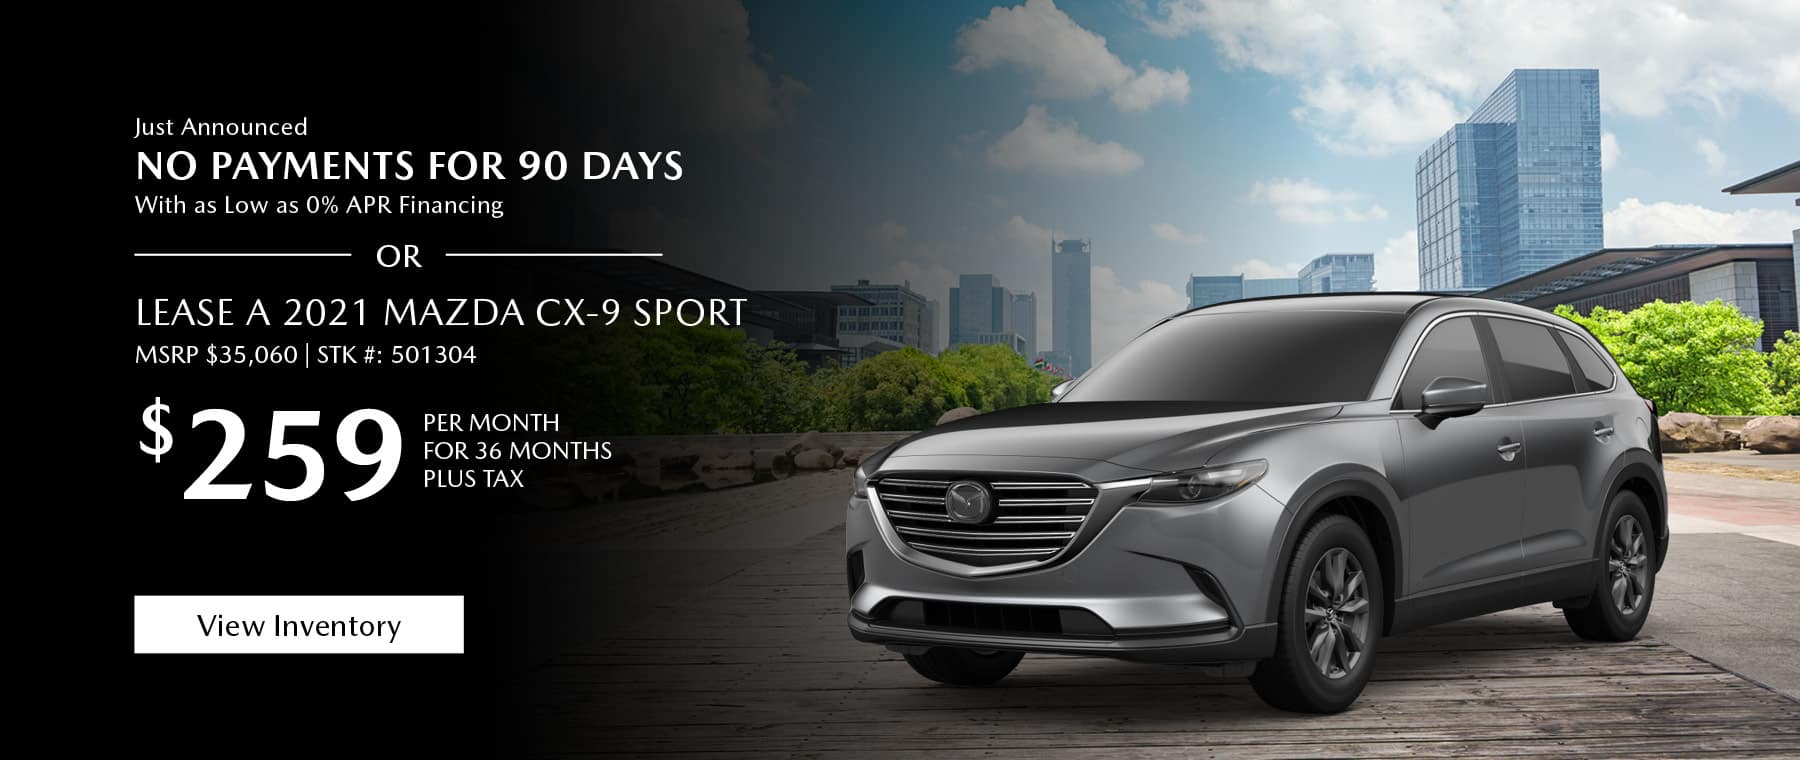 Just Announced, No payments for 90 days with as low as %0 APR financing, or lease the 2021 Mazda CX-9 for $259 per month, plus tax. View inventory for 36 months. Click or tap here to view our inventory.